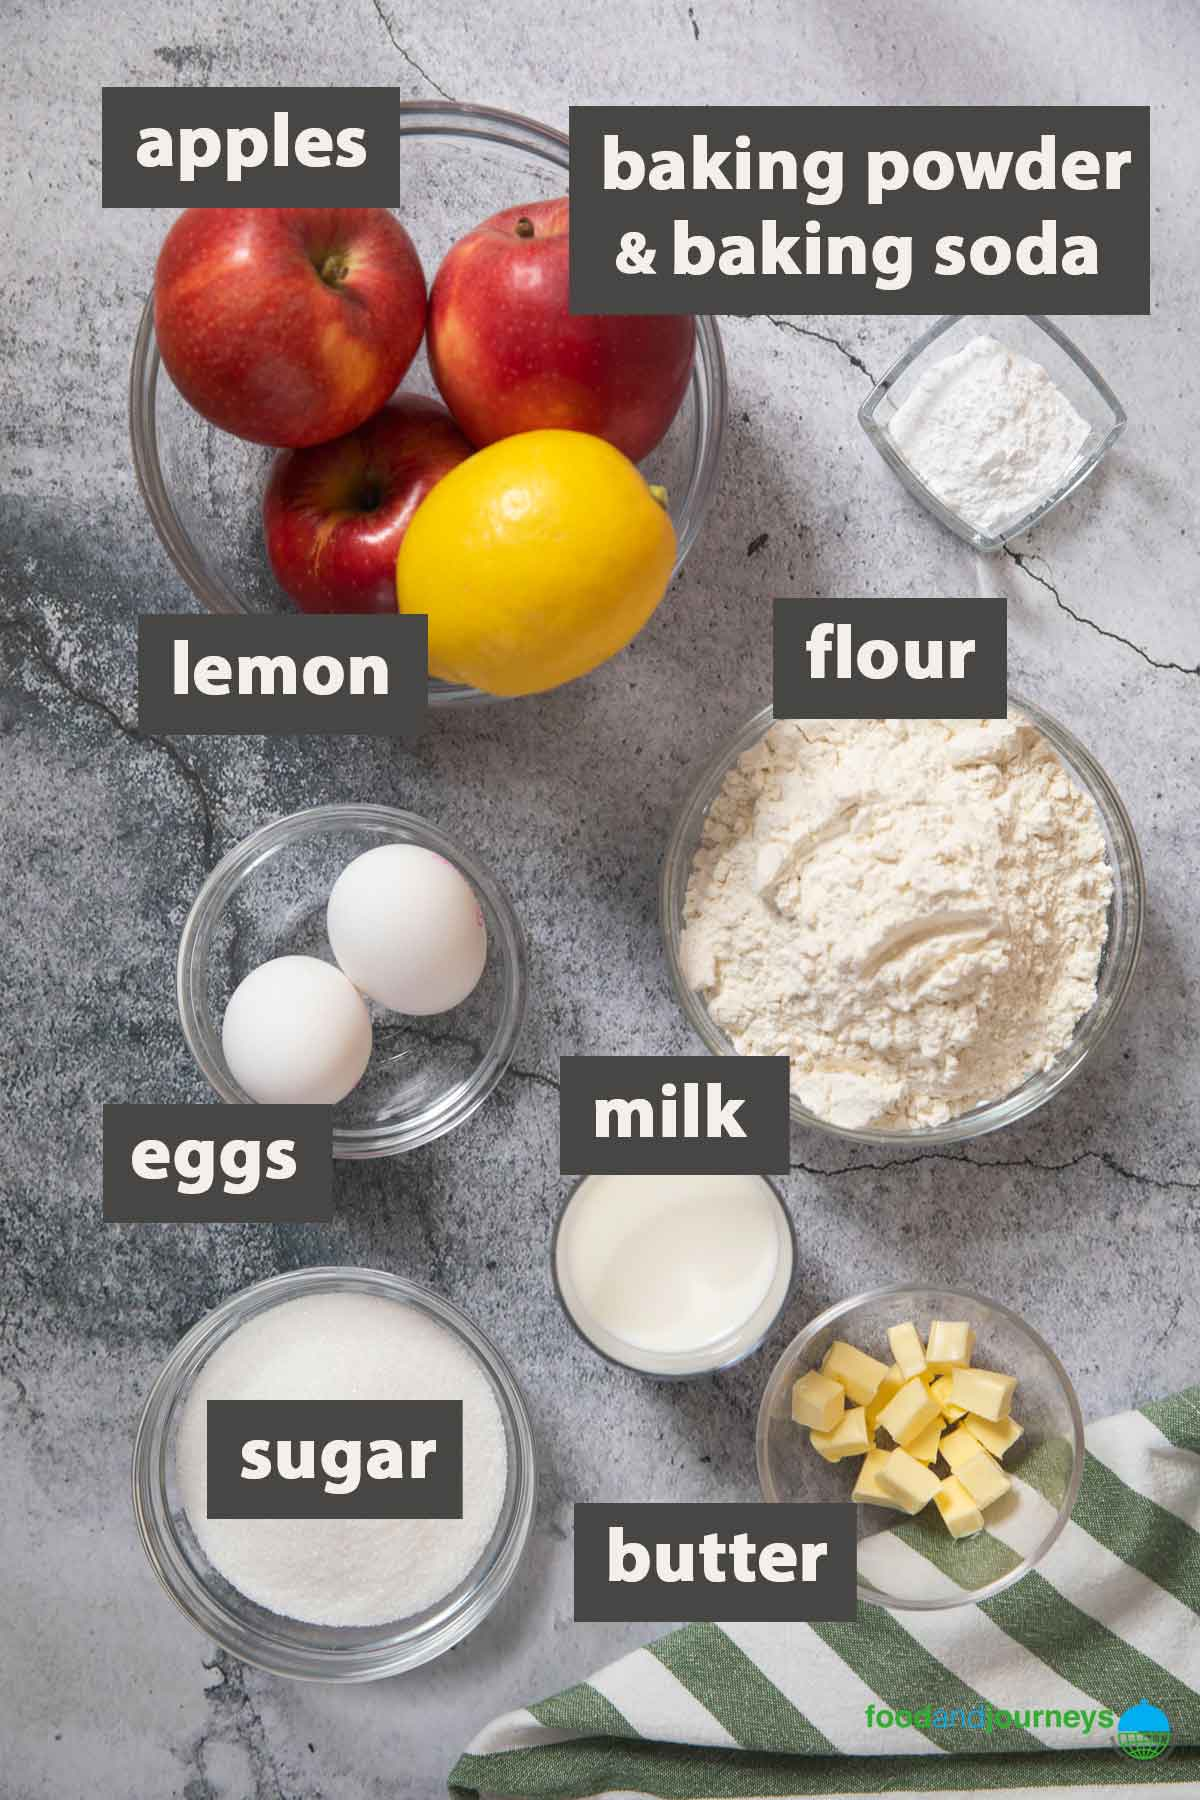 Updated image showing all the ingredients you need to make Torta di Mele at home.